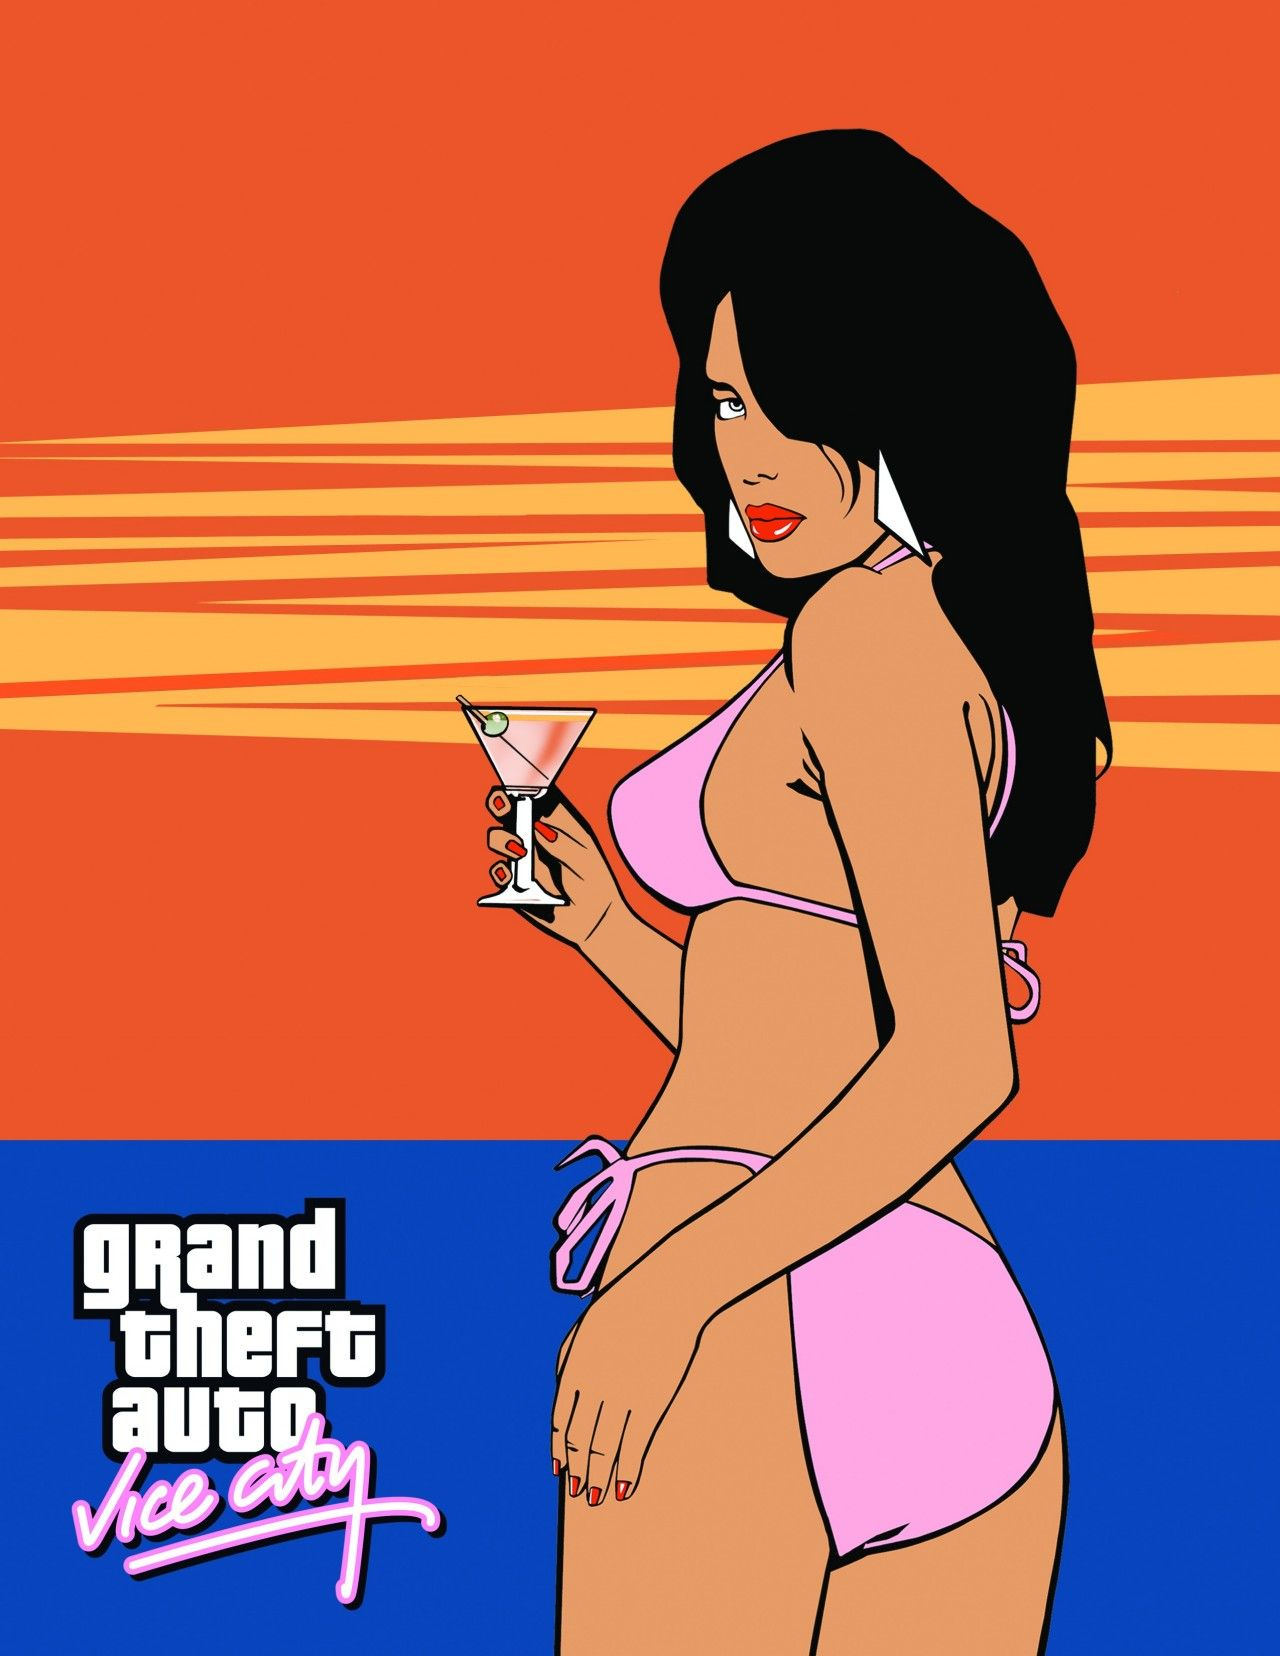 Animate xxx of vice city game free  anime woman